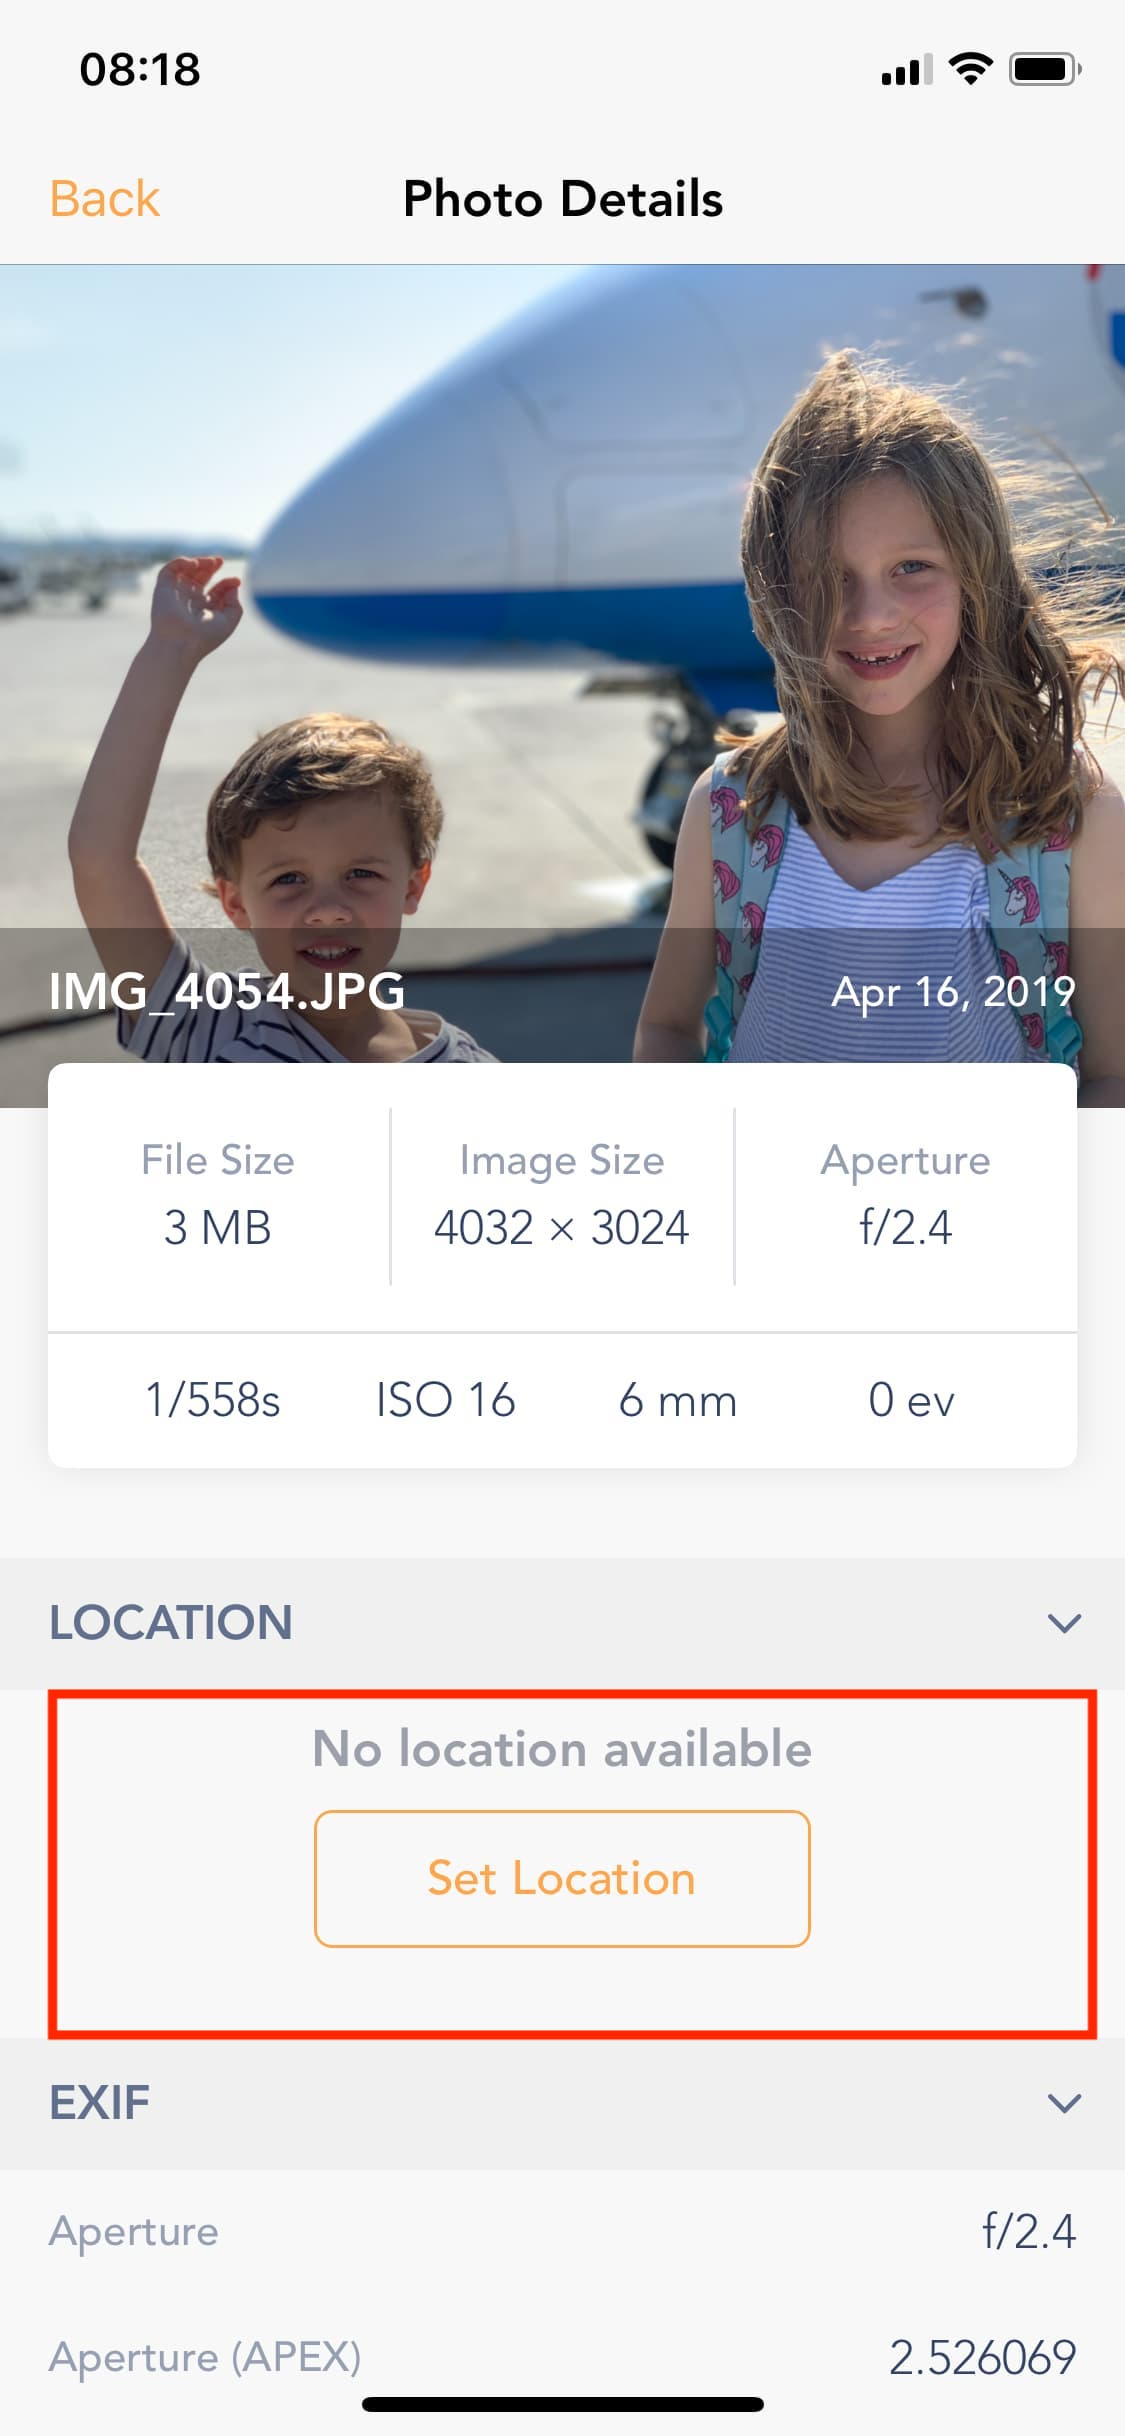 https://media.idownloadblog.com/wp-content/uploads/2019/04/geolocation-removed-from-photo.jpg